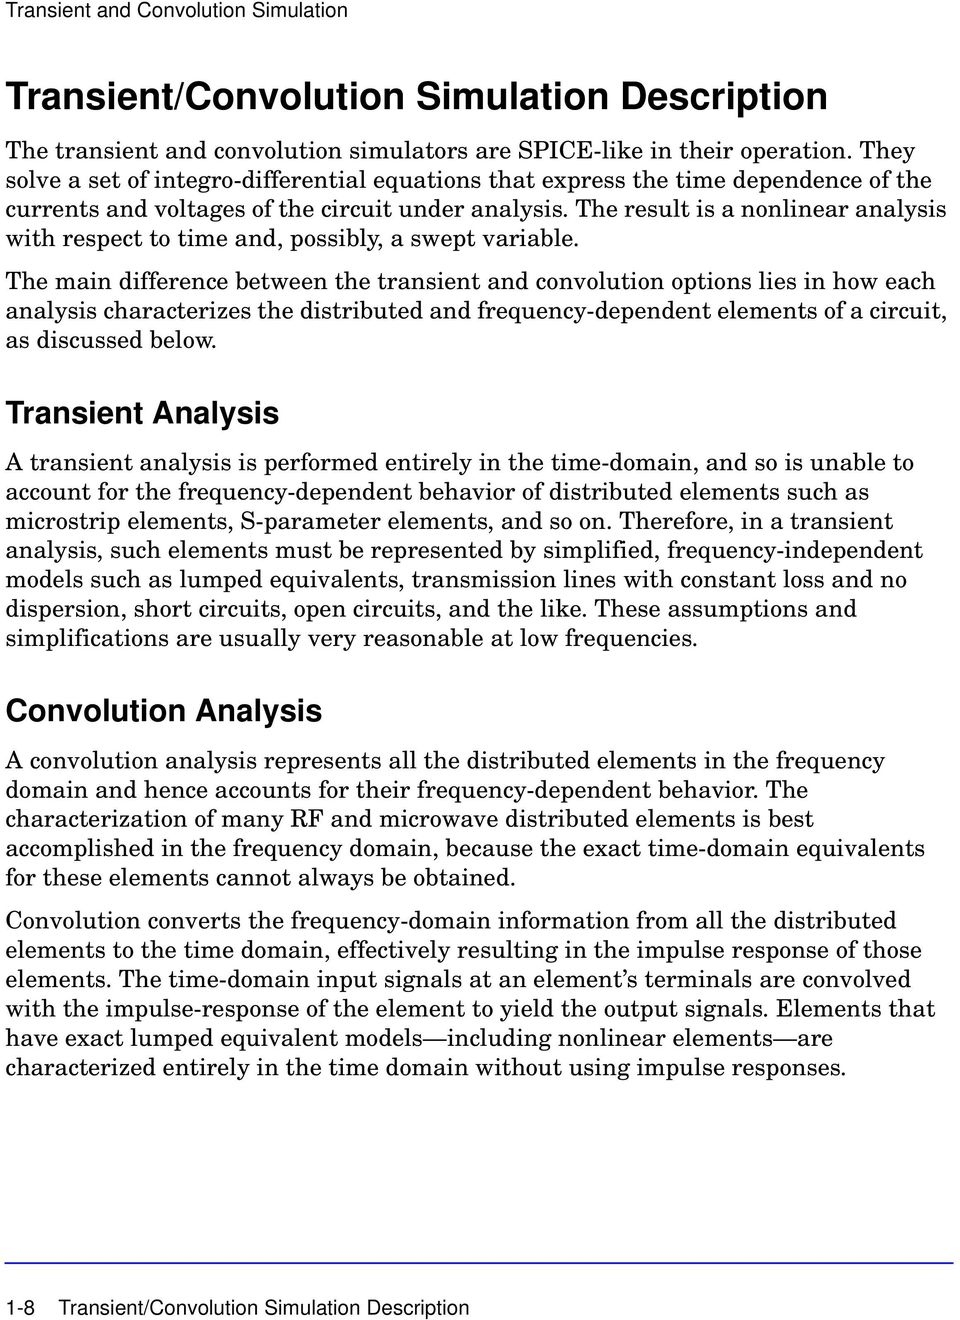 Transient Convolution Simulation Pdf Frequencydependent Circuits The Result Is A Nonlinear Analysis With Respect To Time And Possibly Swept